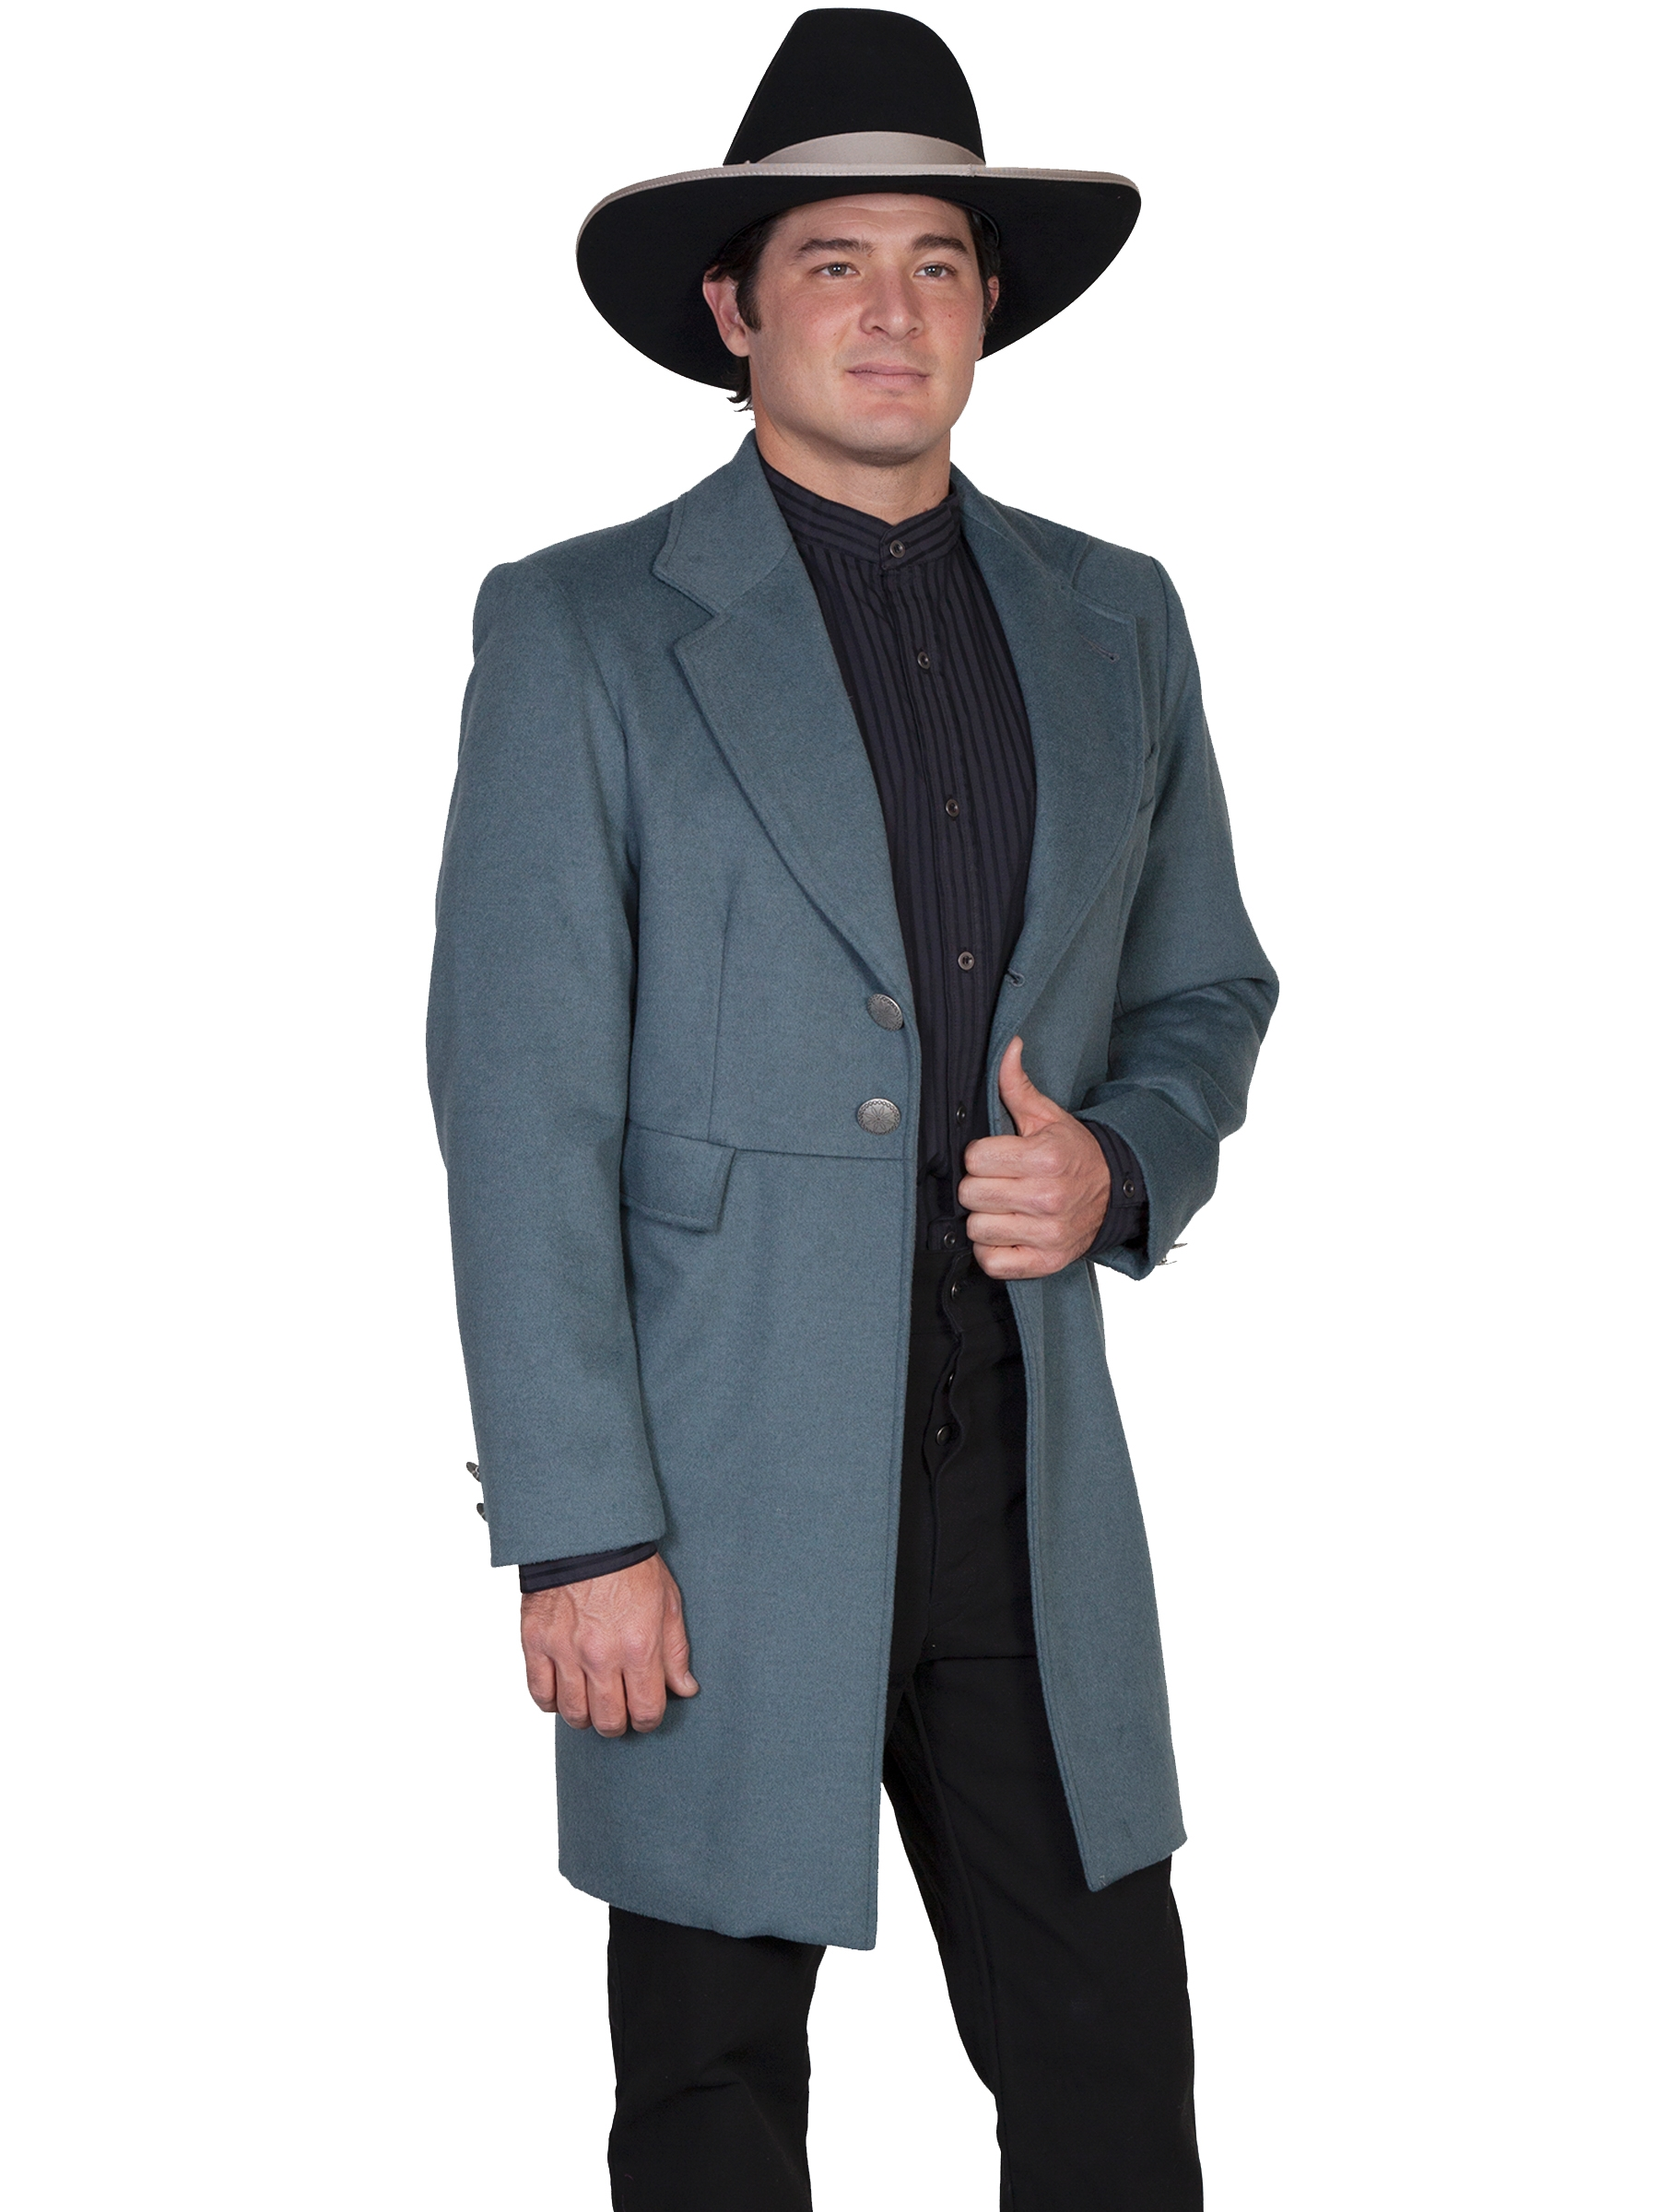 Mens Scully USA Made 3/4 Long Mossy Wool Frock Coat, mens western coats, western blazers for men, mens wedding western, mens wedding western apparel, mens wedding western attire, mens wedding western wear, mens wedding western jacket